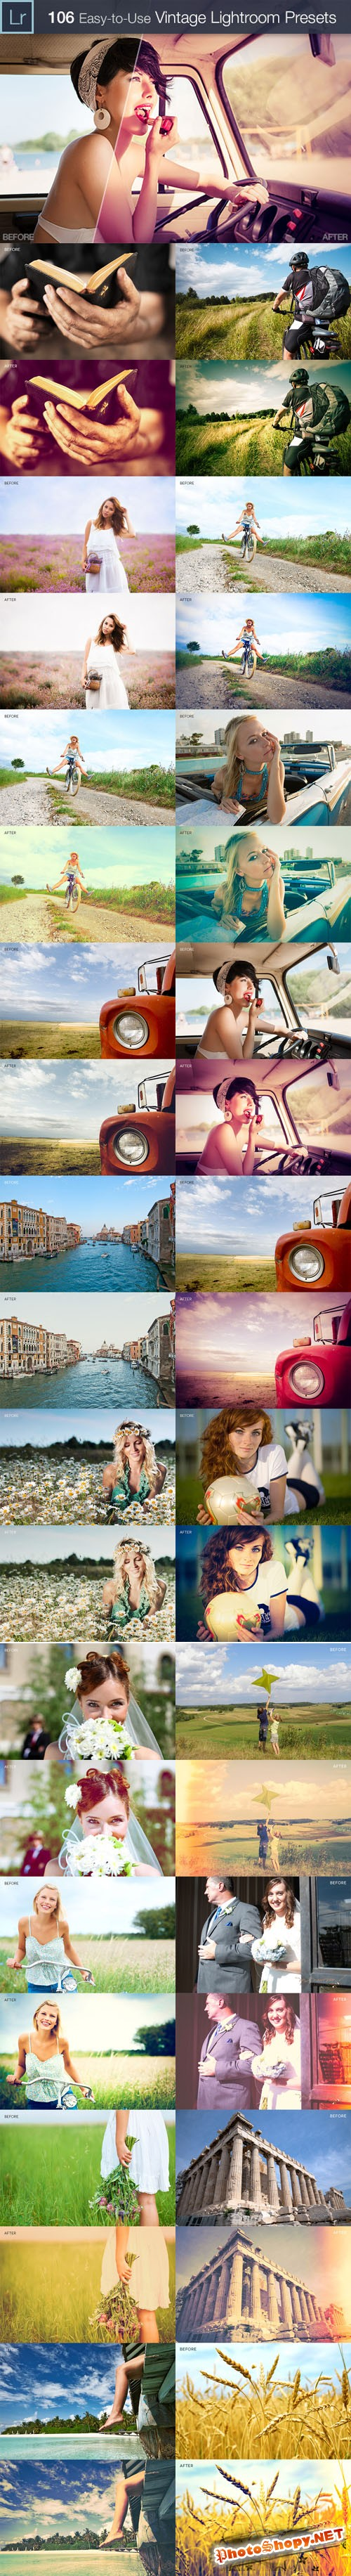 Vintage Lightroom Presets Collection 106 Elegant Presets from 4 Sets